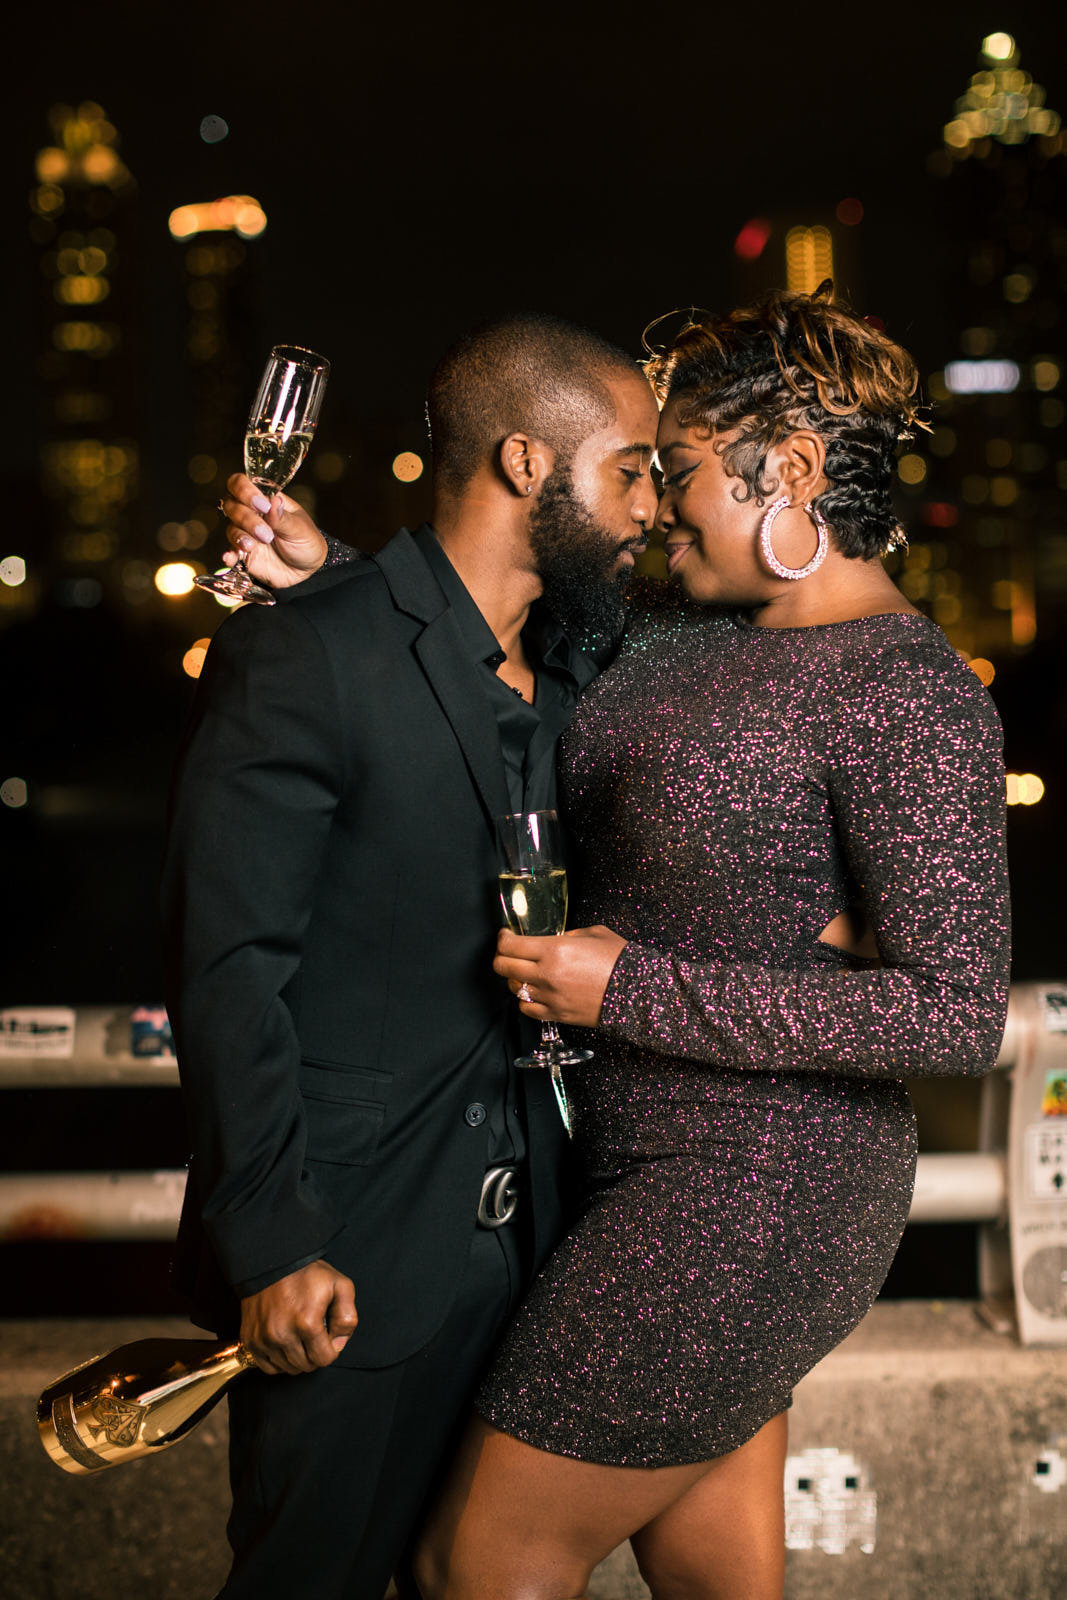 engaged couple shares glass of champagne at Jackson Street Bridge Atlanta skyline